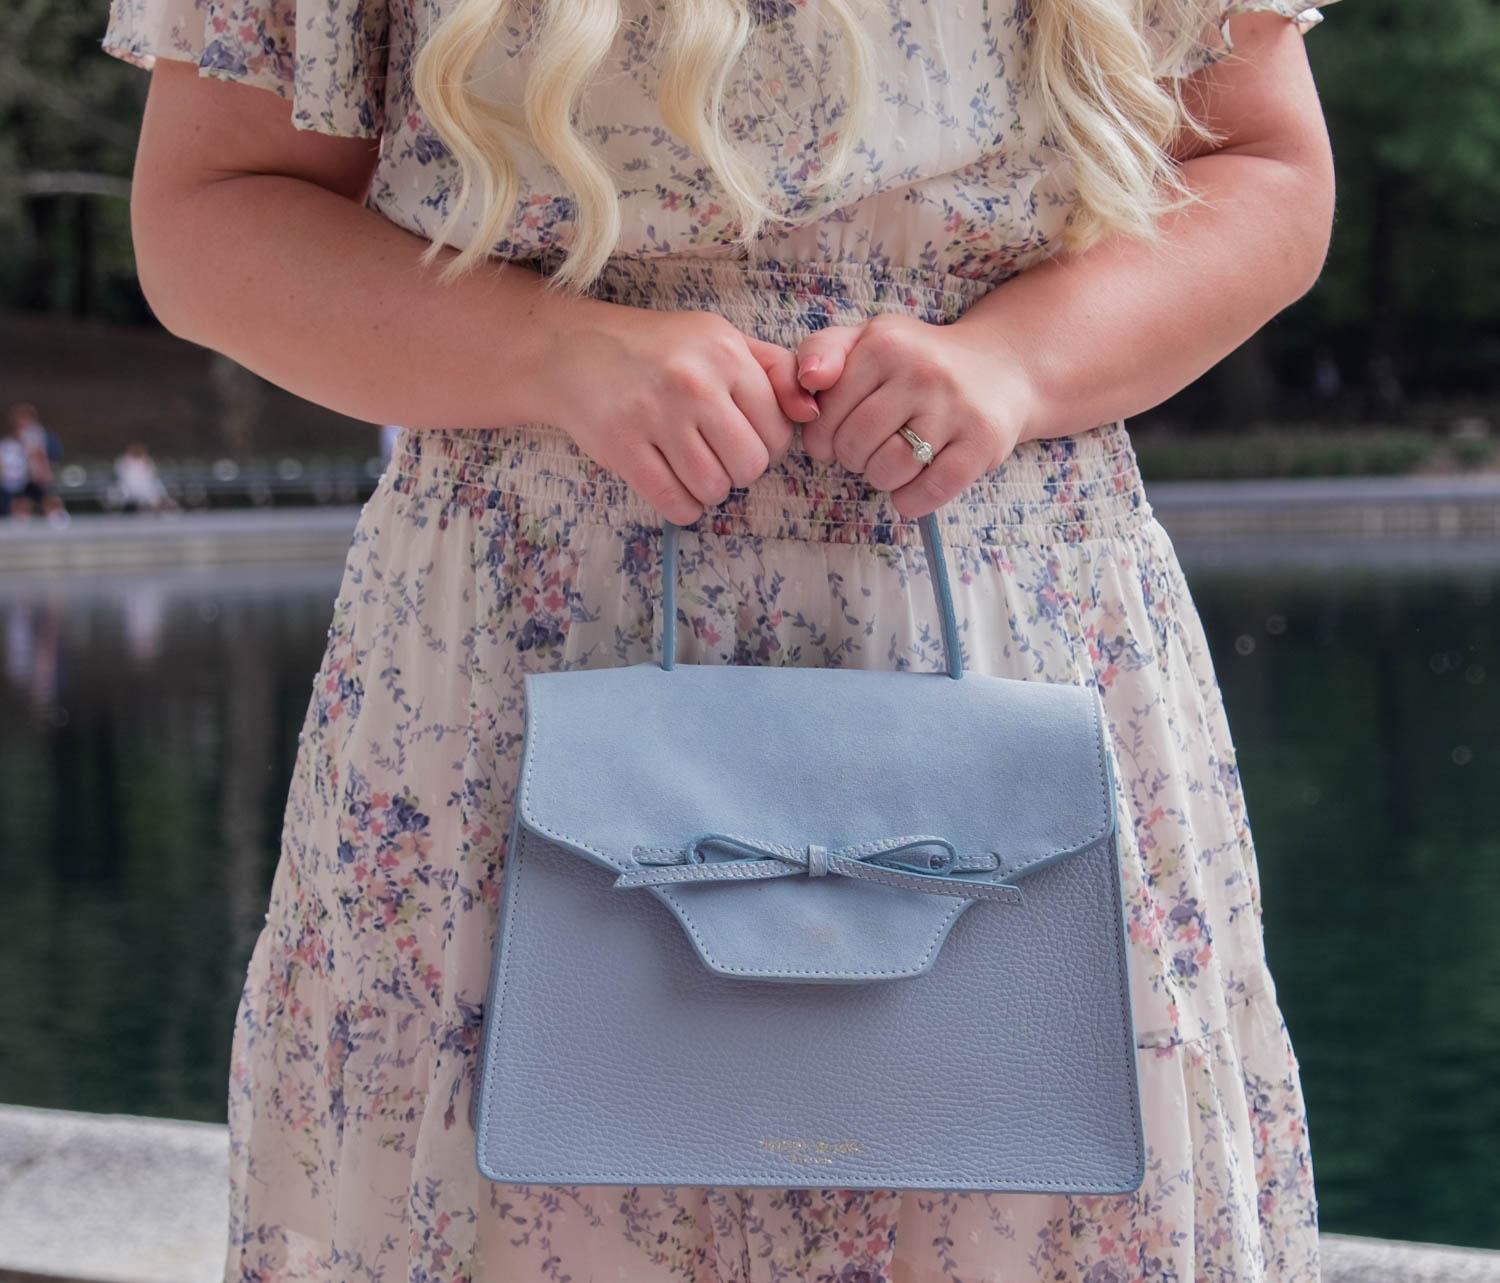 Elizabeth Hugen of Lizzie in Lace wears the Elliatt Wish dress and Teddy Blake handbag to NYFW!